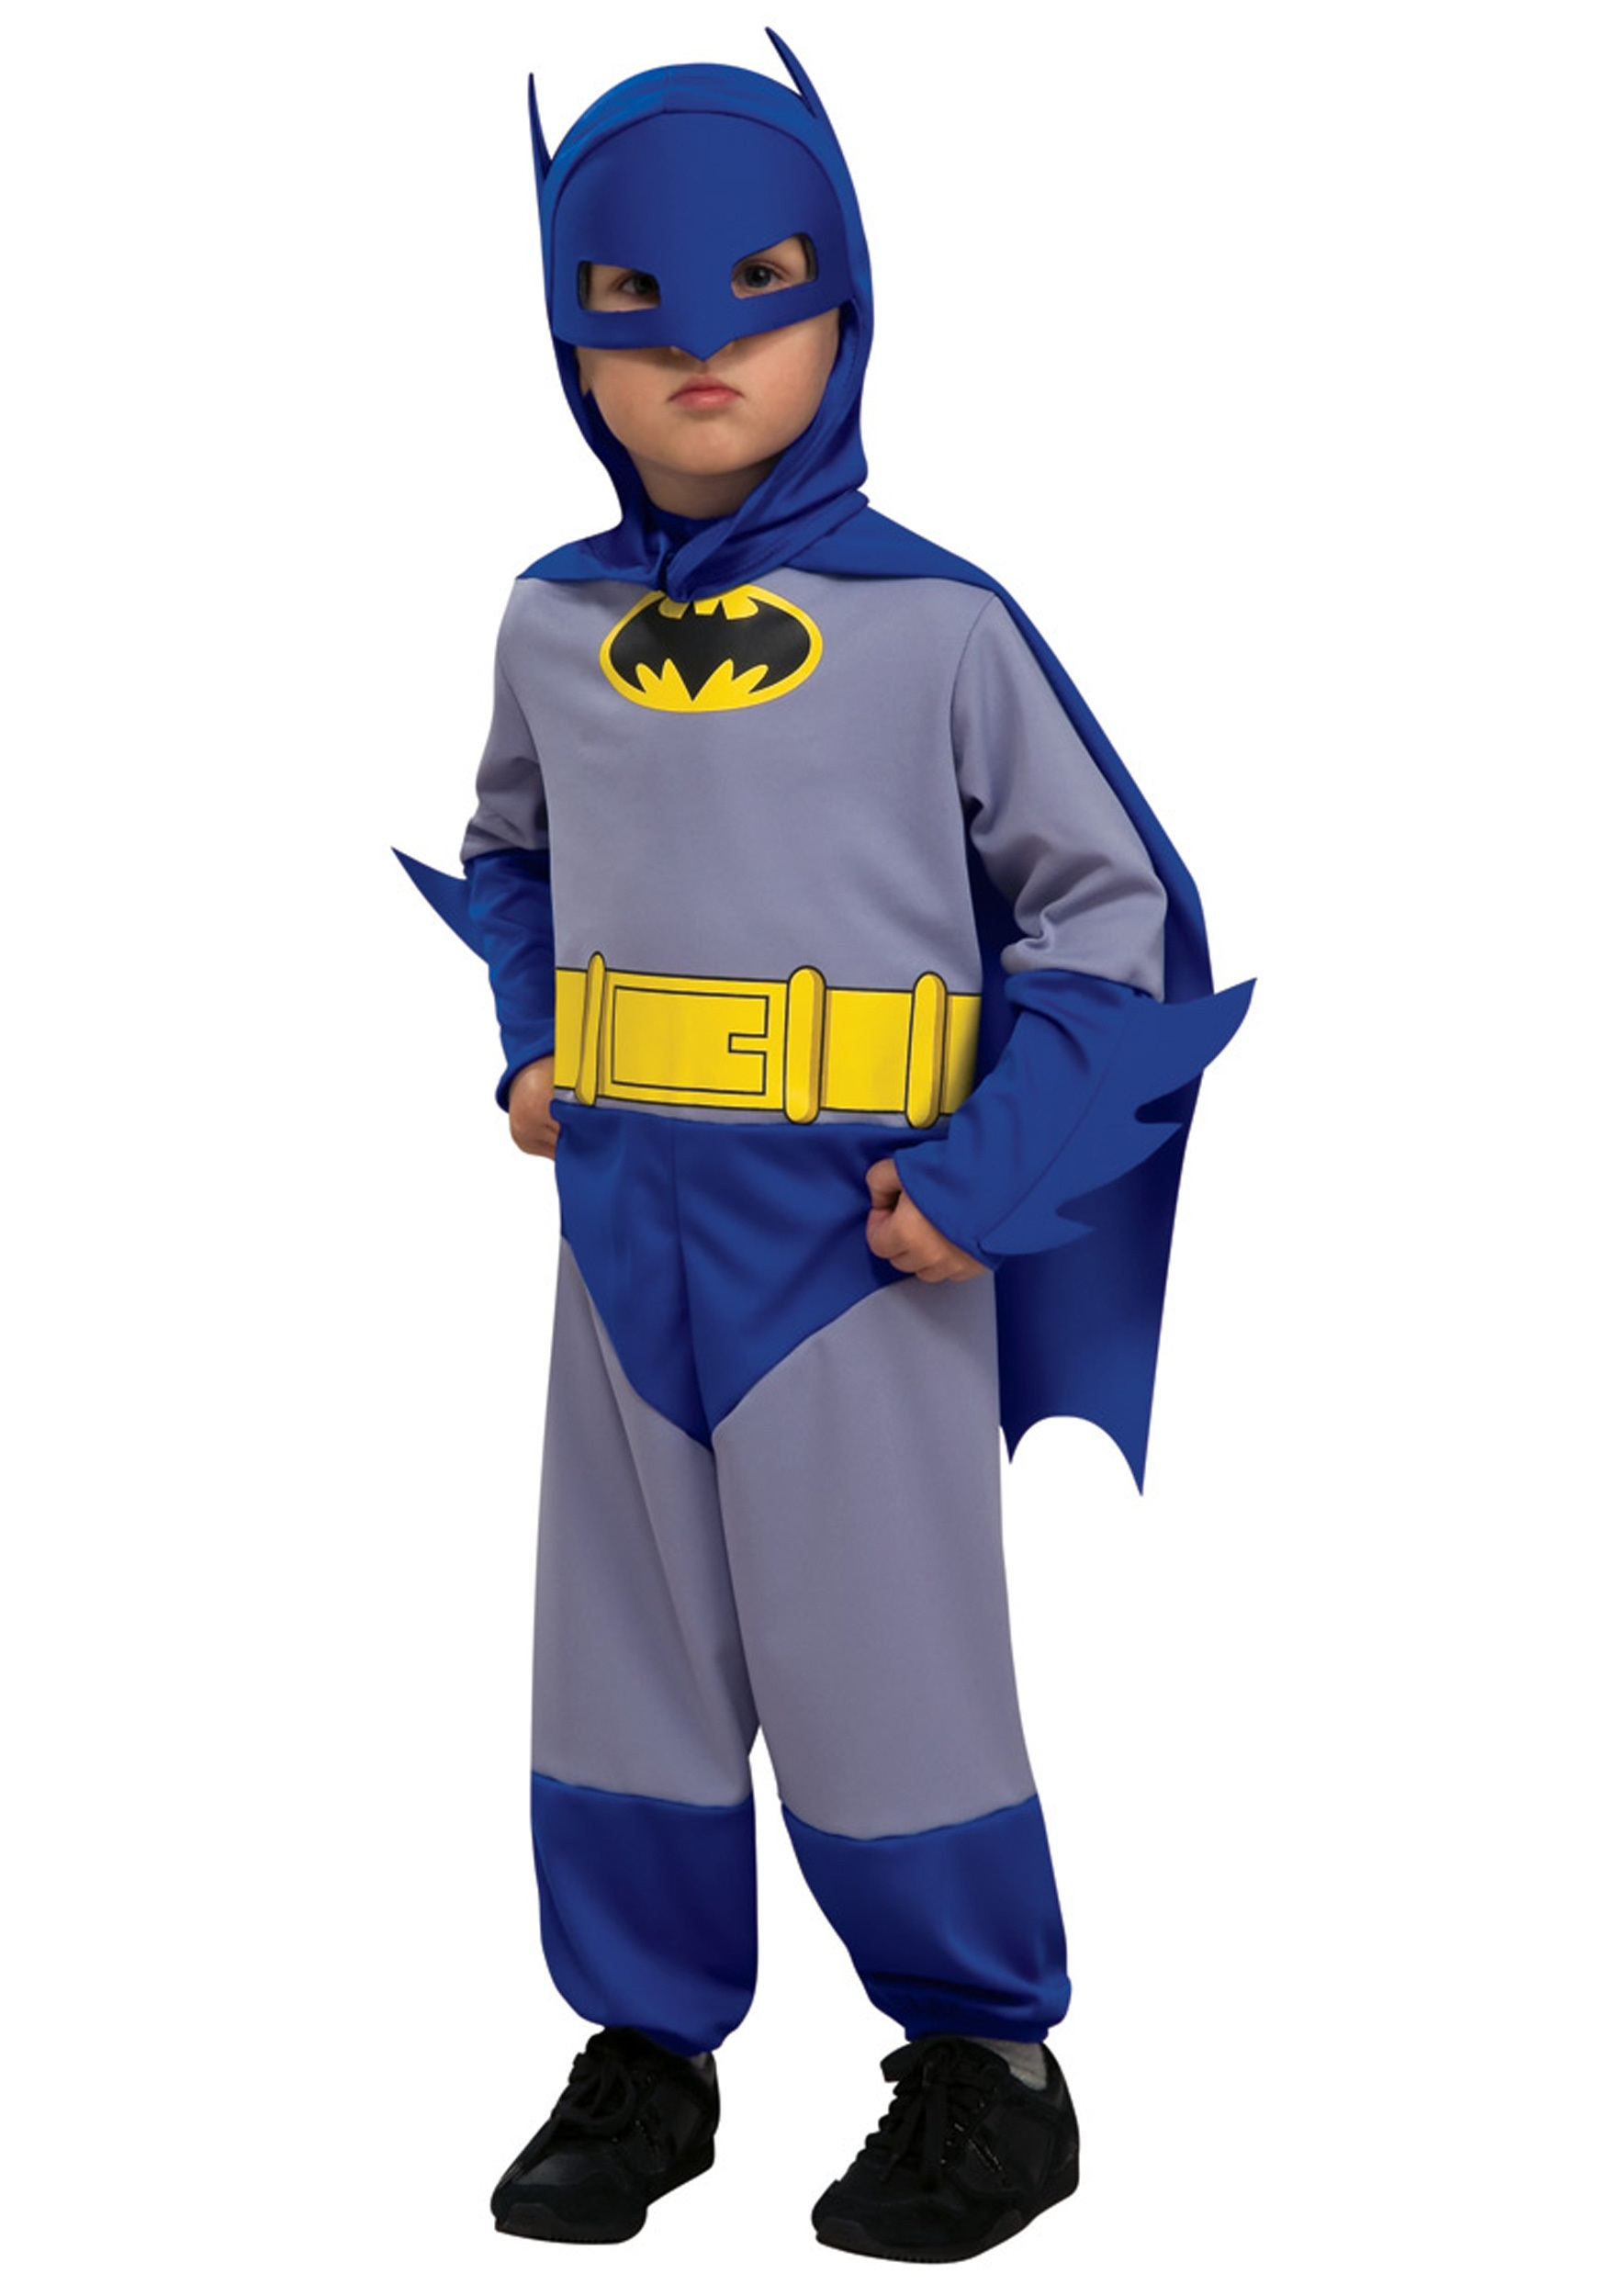 Batman - Costumes. Showing 40 of results that match your query. Search Product Result. Boy's Classic Batman Costume. Product Image. Price $ Product Title. Boy's Classic Batman Costume. We focused on the bestselling products customers like you want most in categories like Baby, Clothing, Electronics and Health & Beauty.